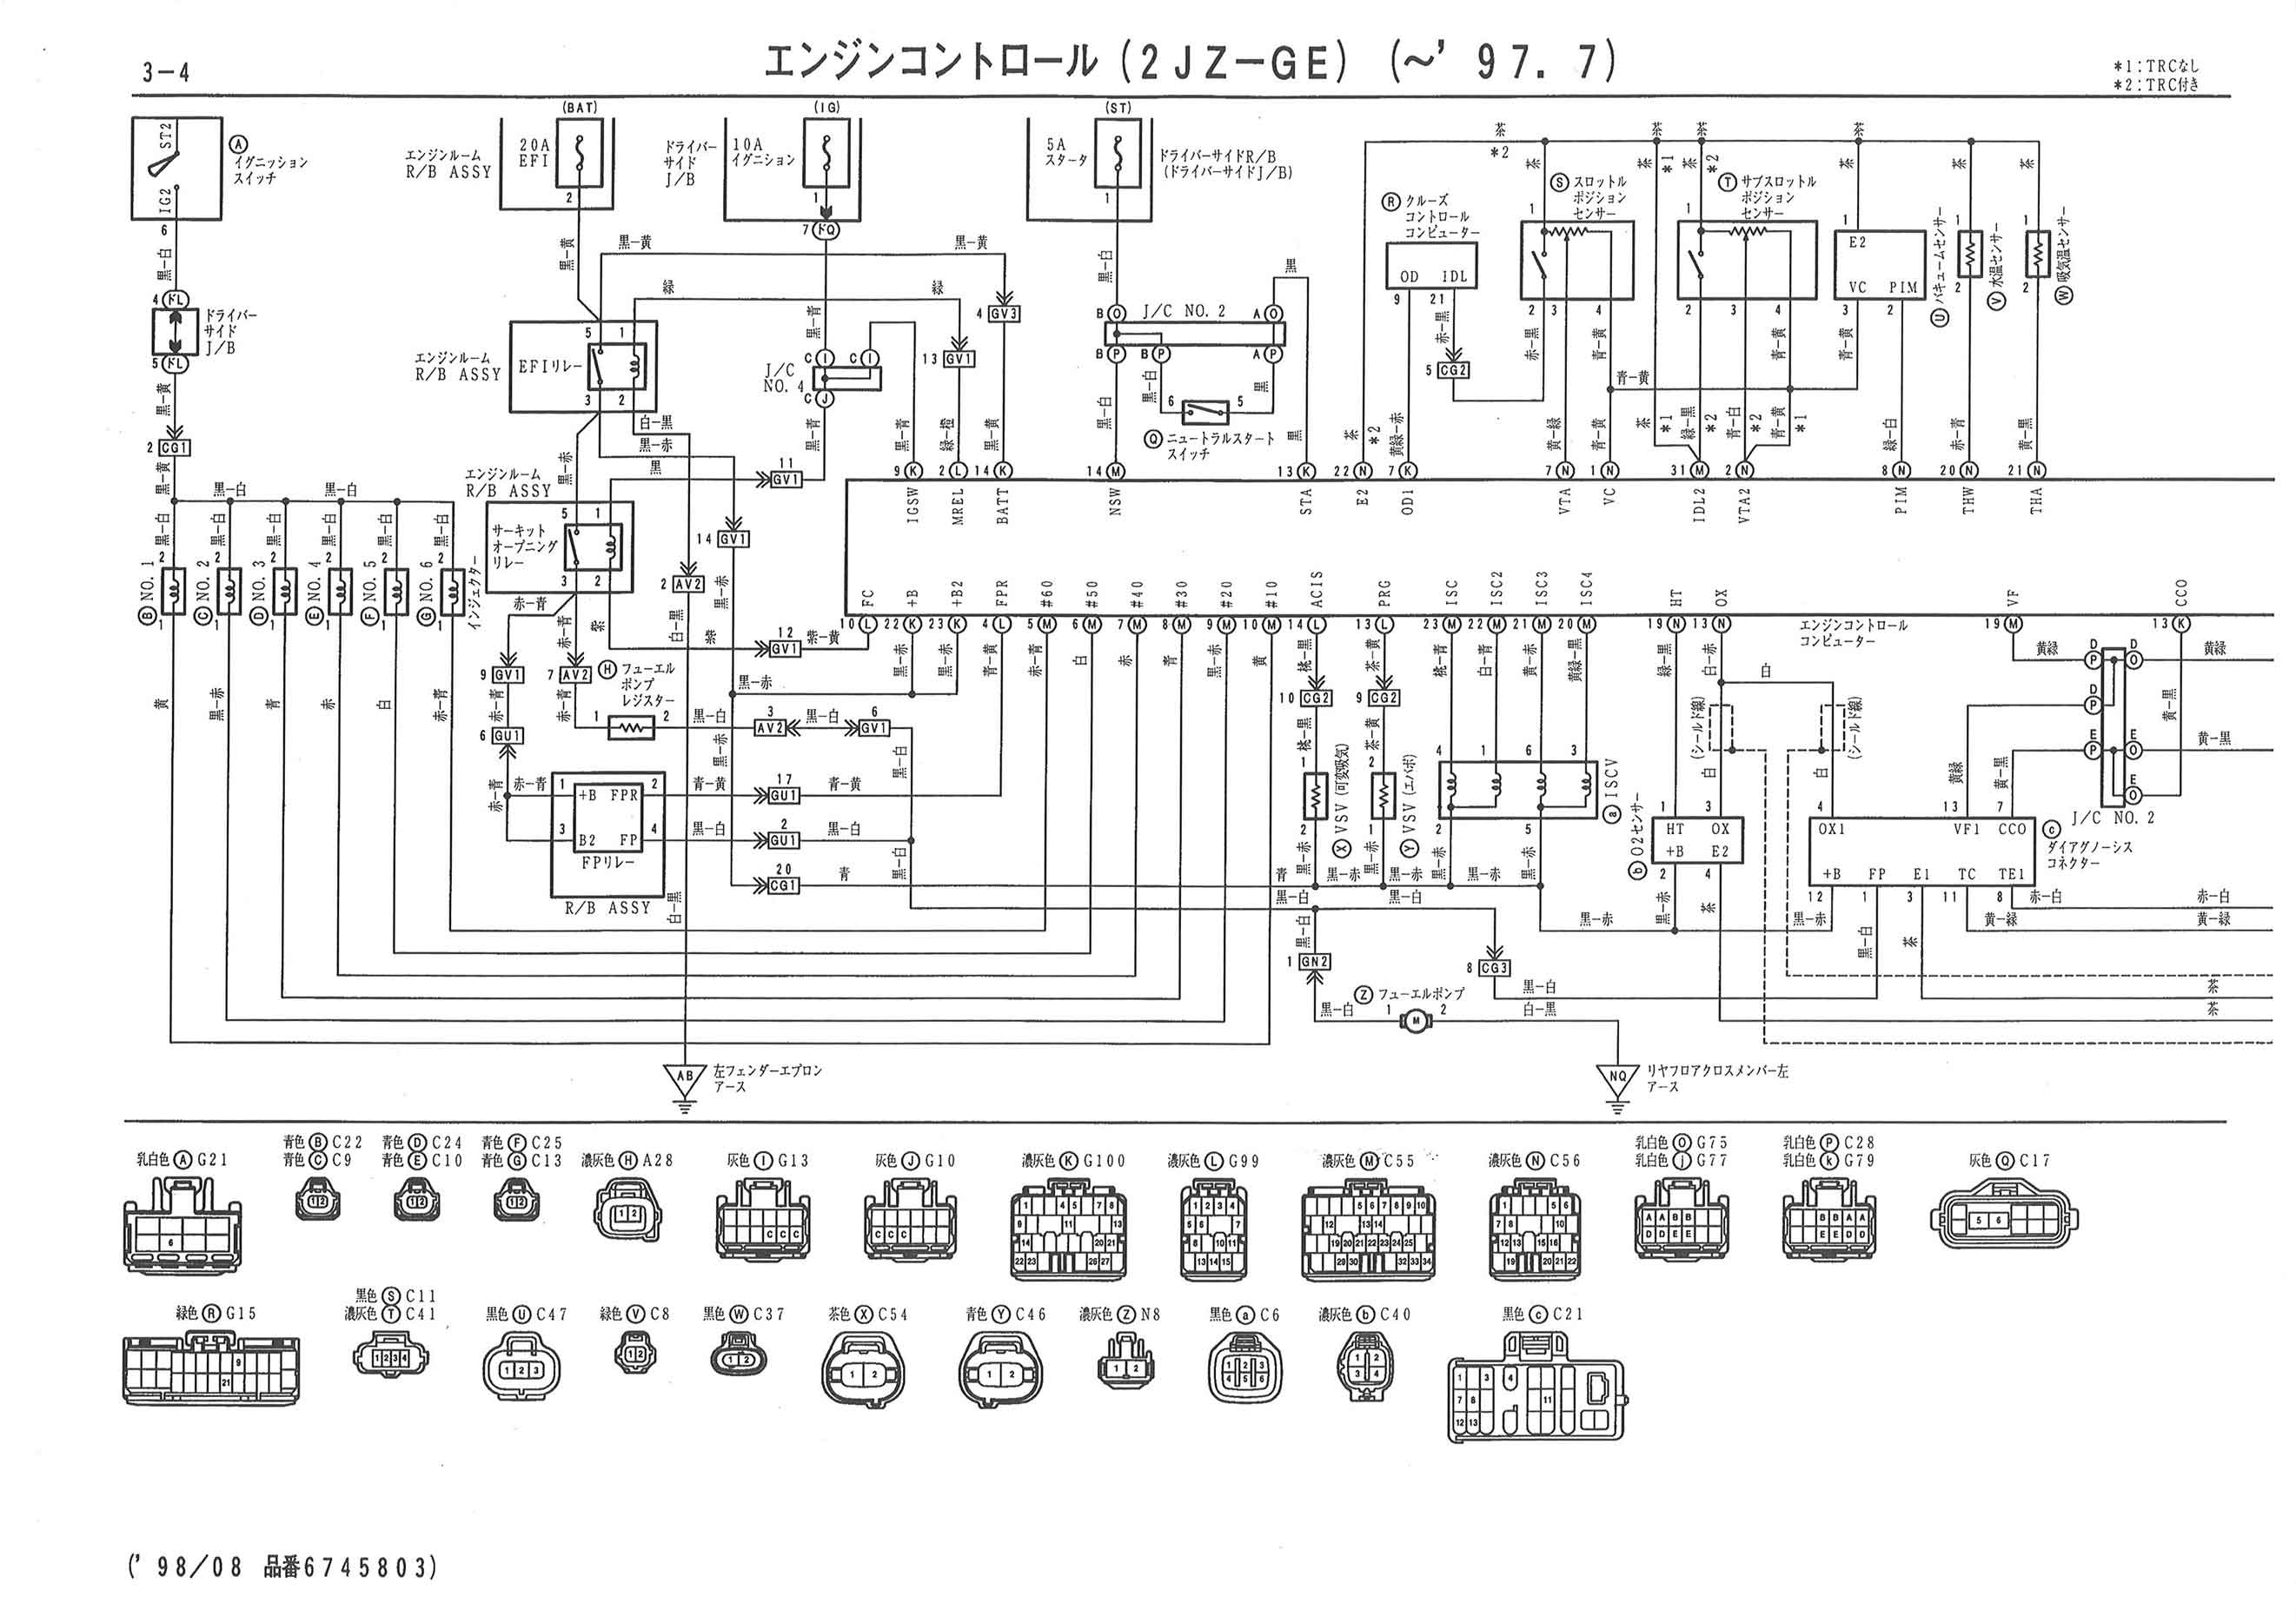 2JZ GE VVT i 3 ge vvt i 3 2jz ge wiring diagram pdf at edmiracle.co